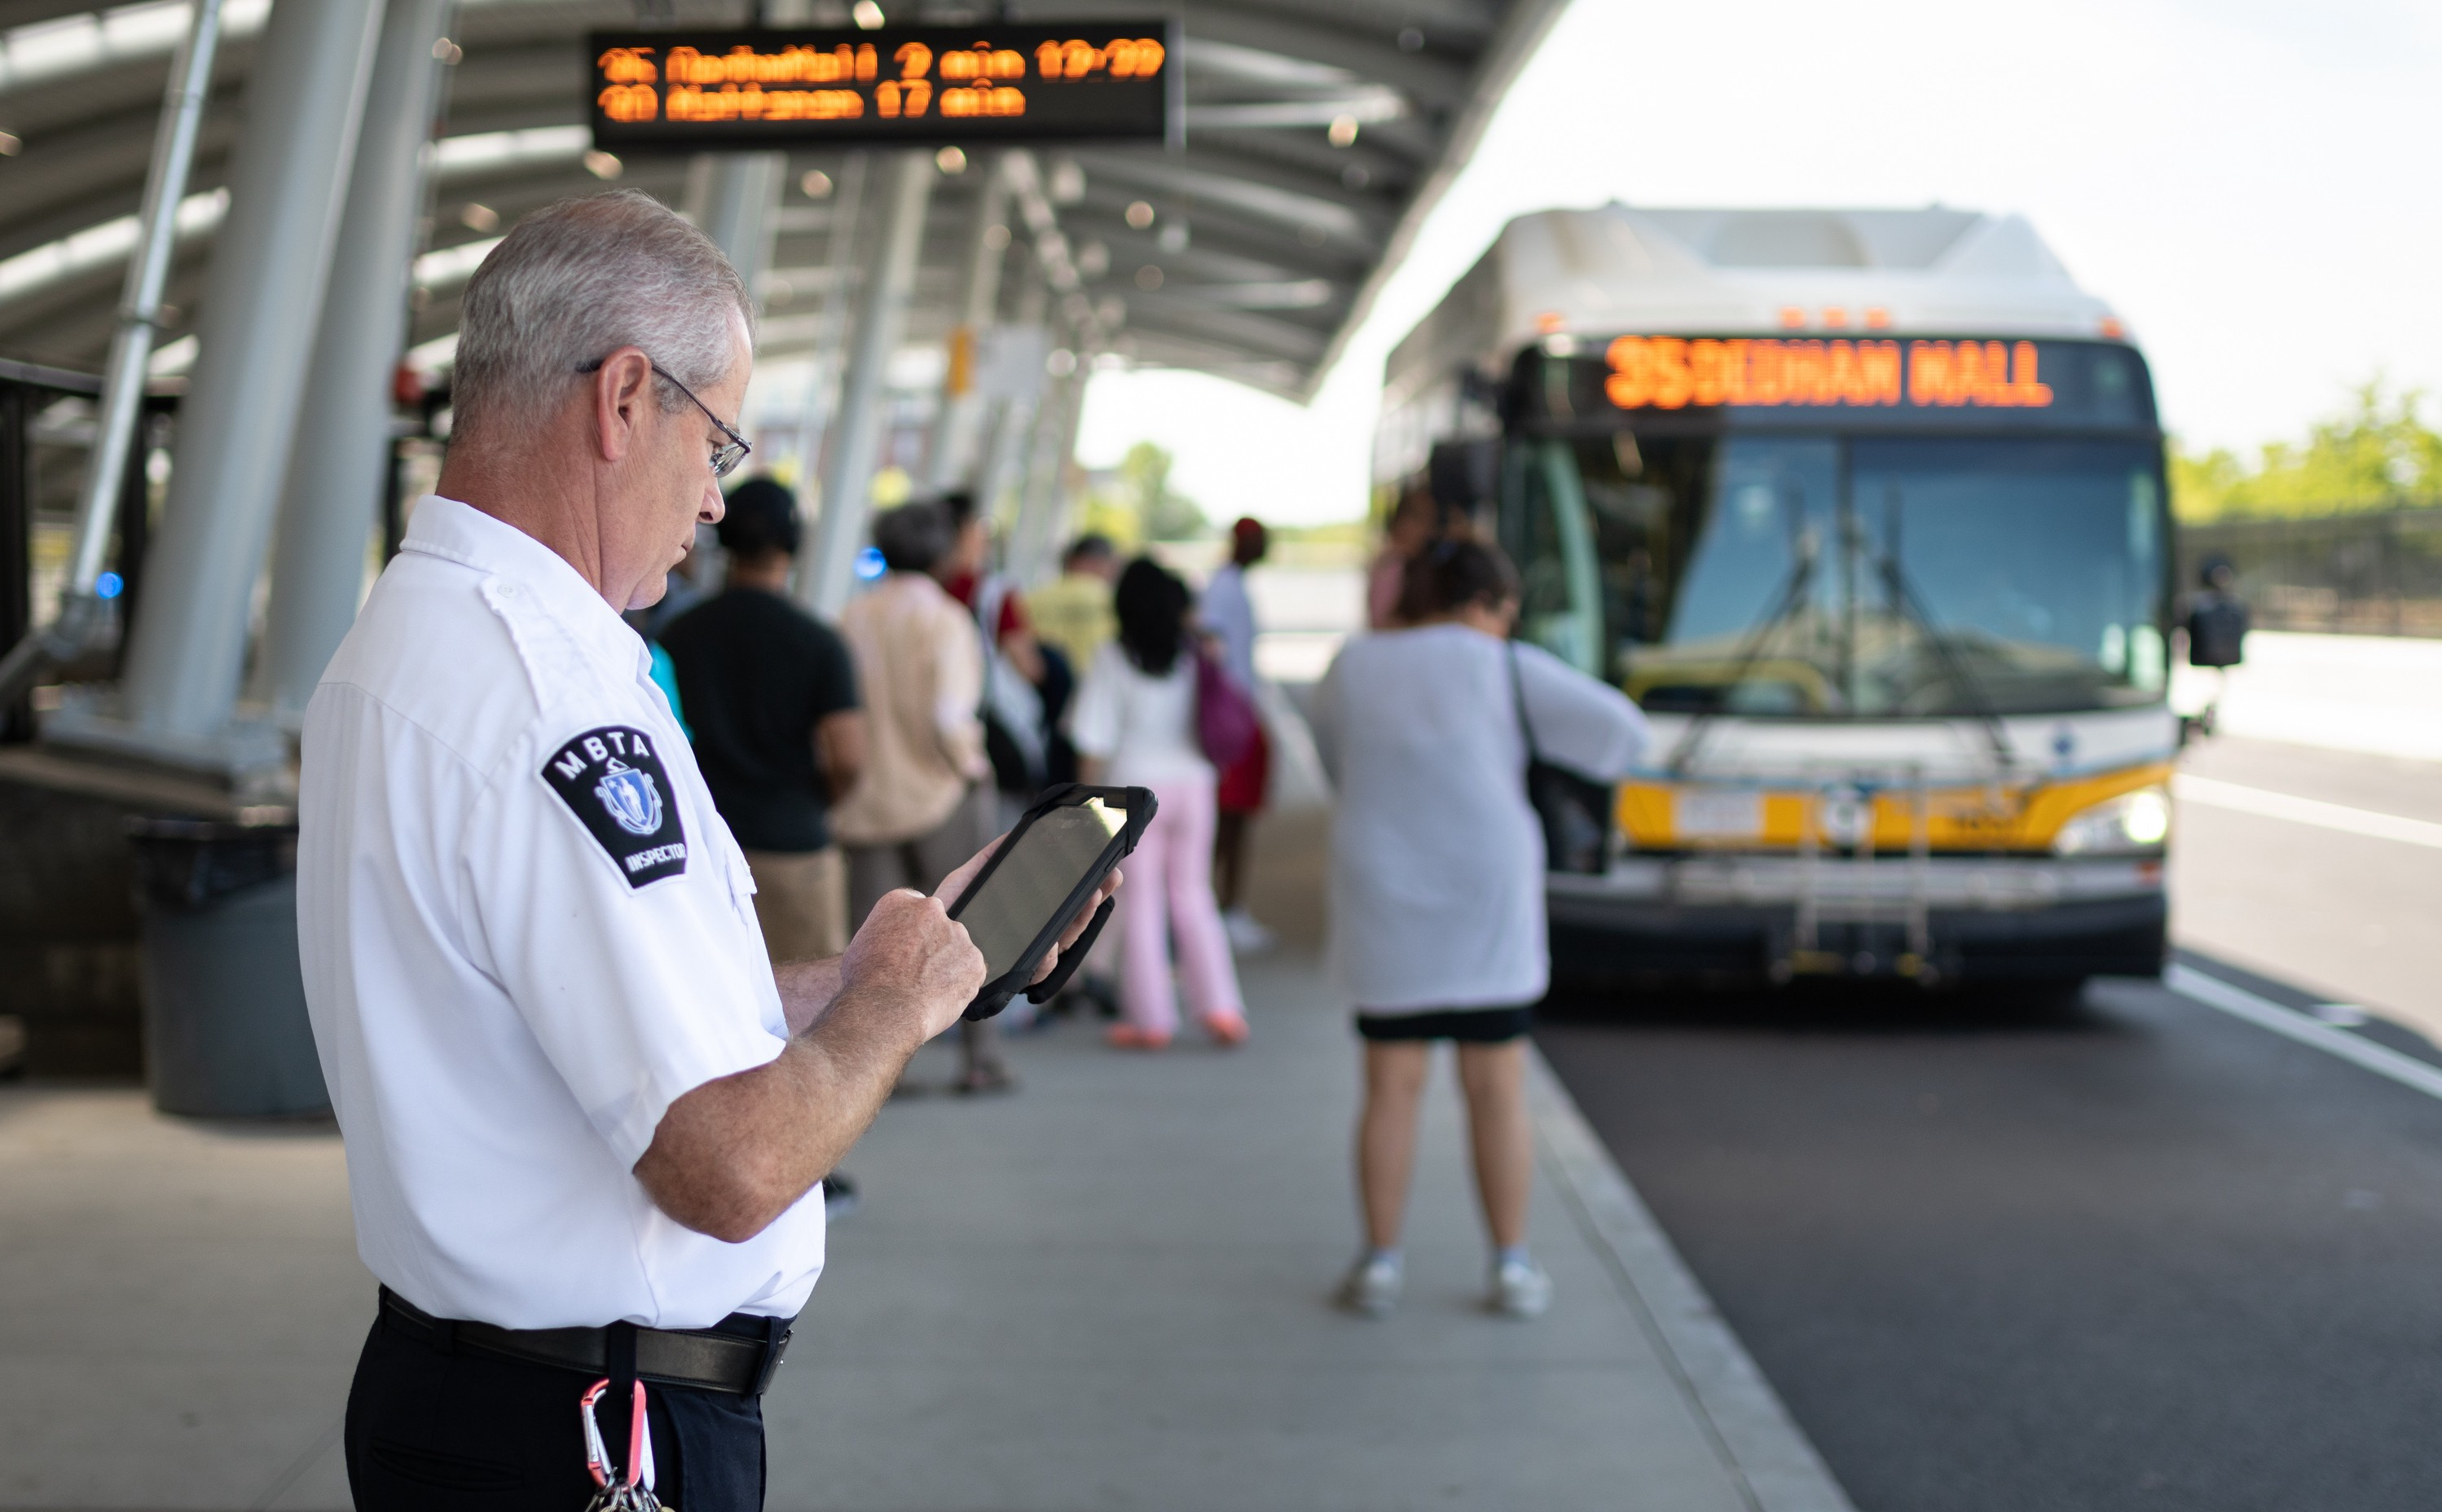 A bus inspector looks at a tablet on the Forest Hills bus platform.